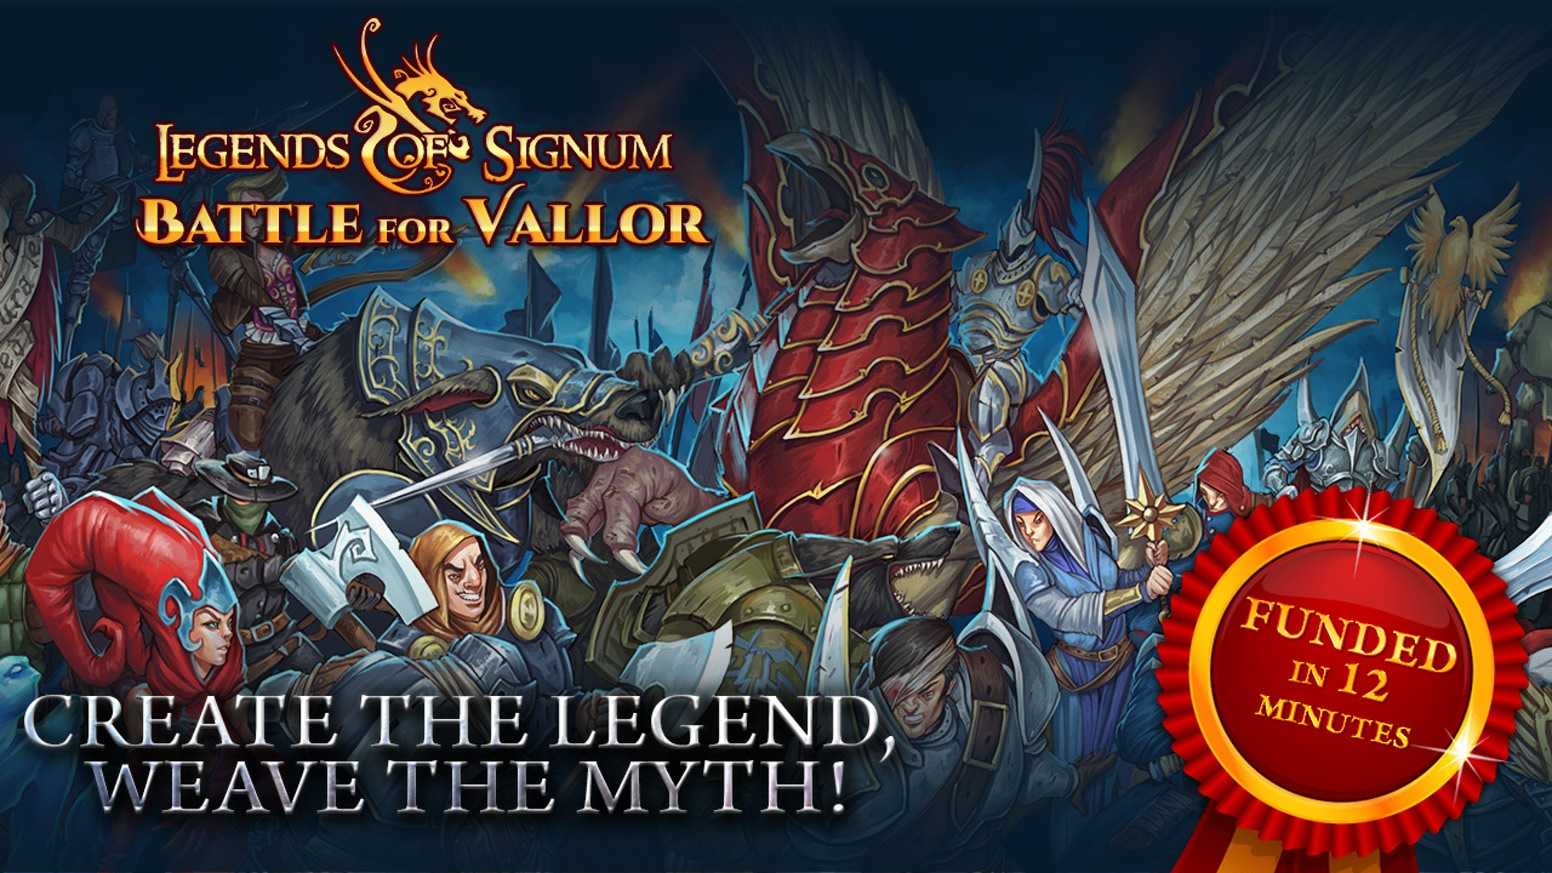 Legends of Signum is a wargame with miniatures and a collectible card game in one box.